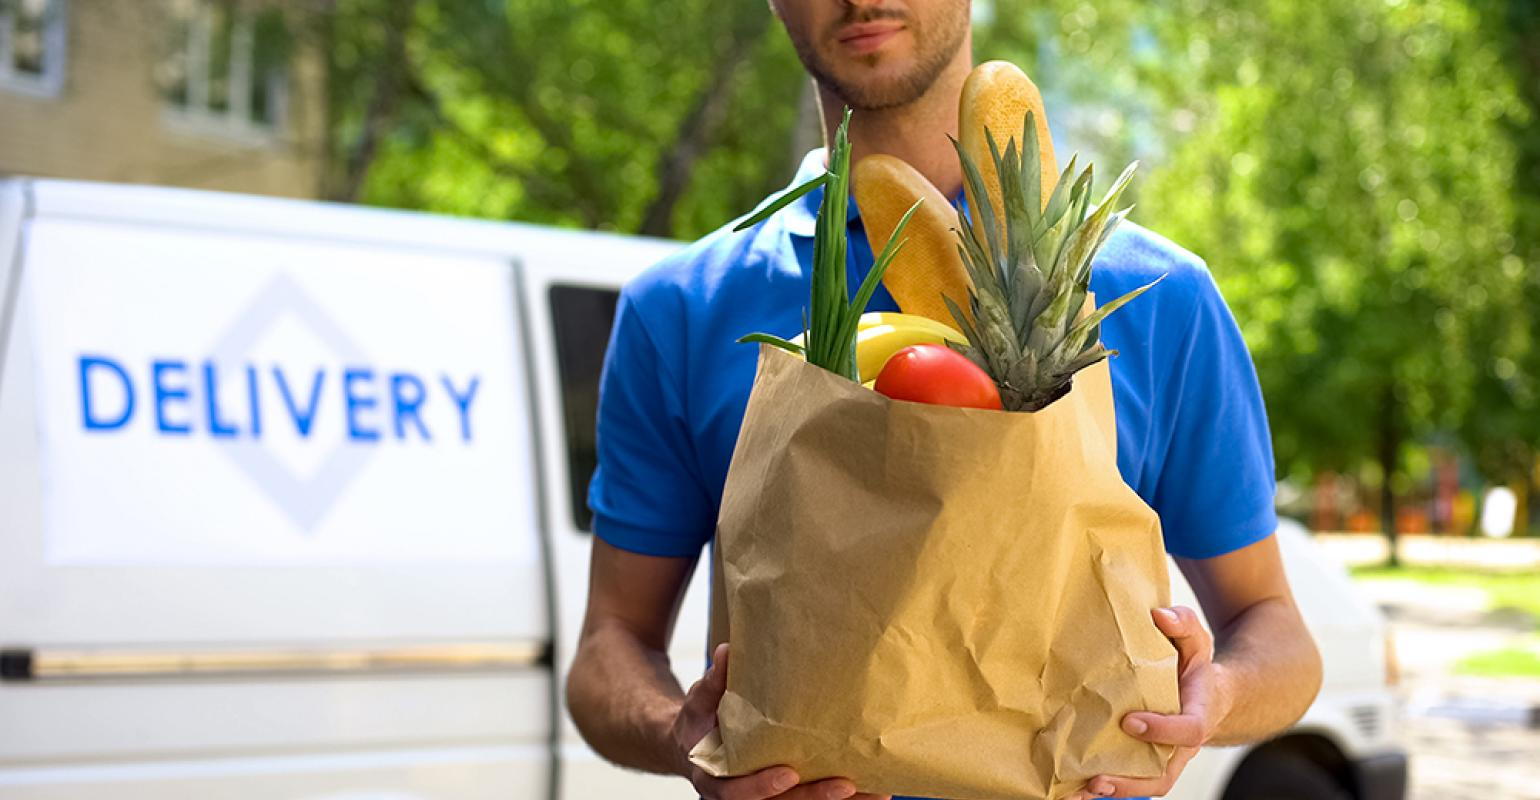 Food delivery tax joins the list of confusing GRT rules and regulations